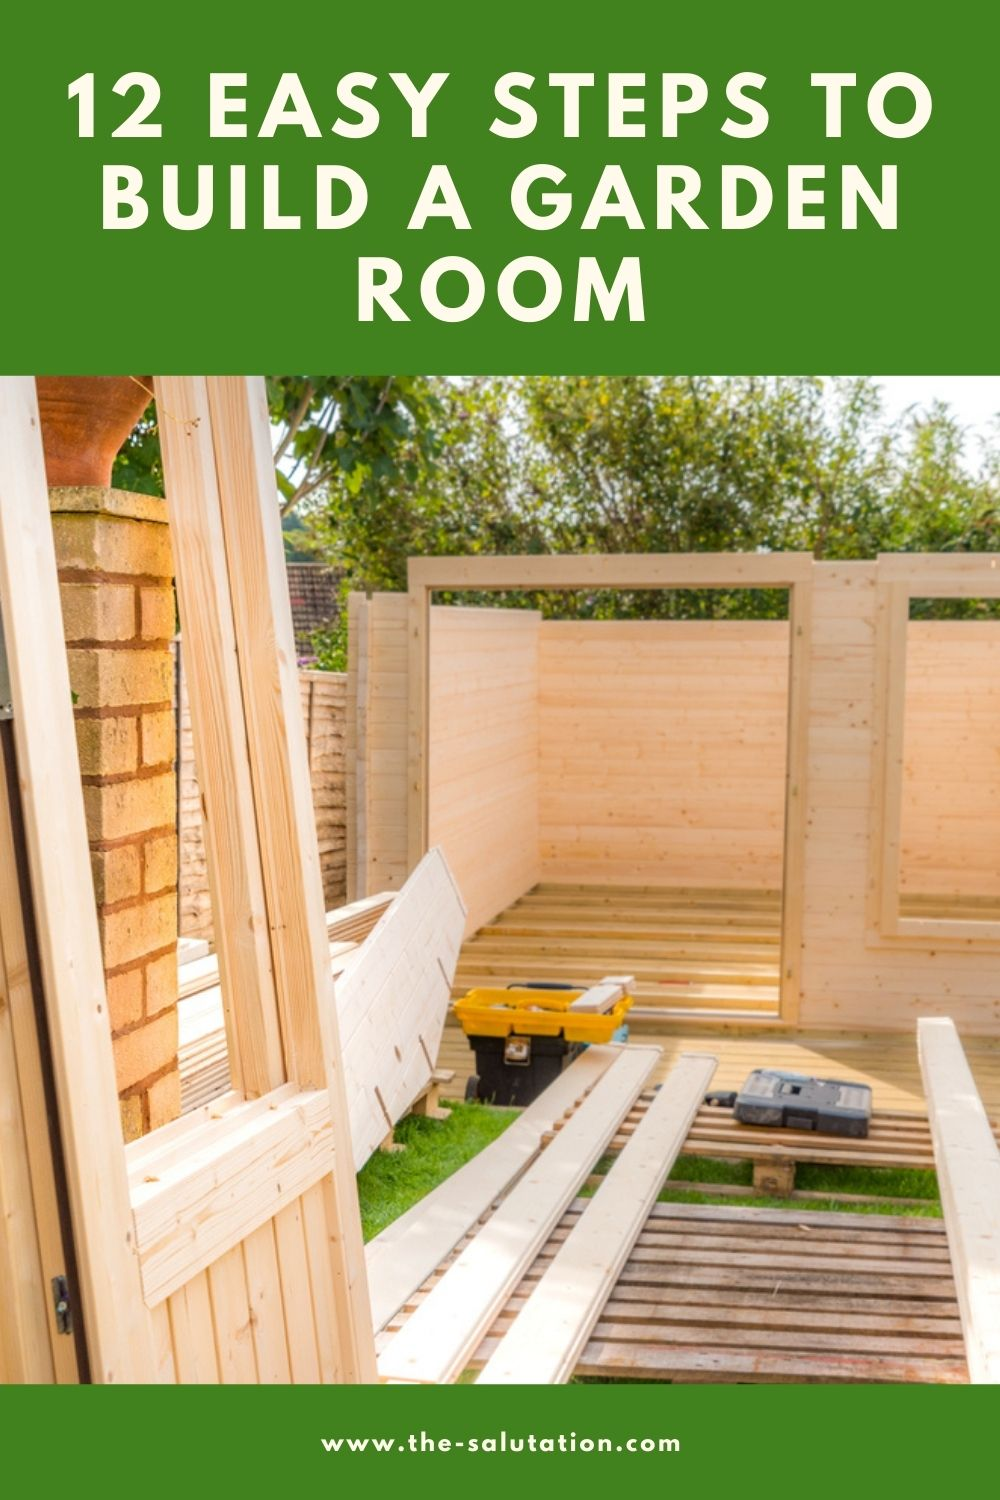 12 Easy Steps to Build a Garden Room 1